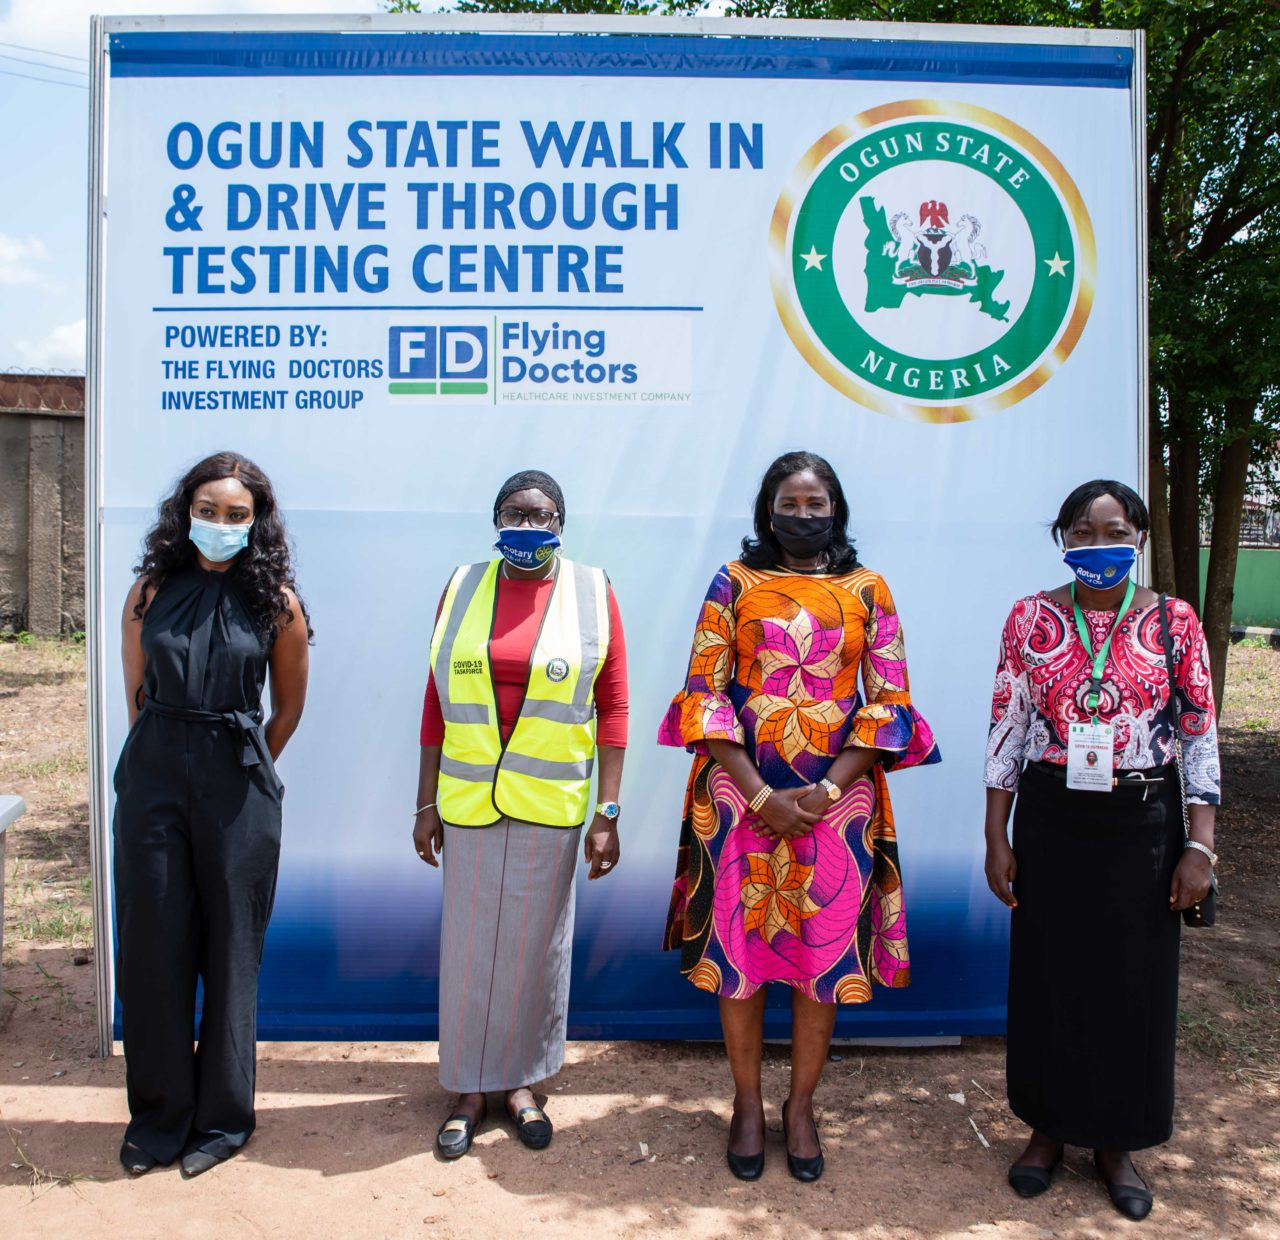 Ogun State brings innovation to the fight against COVID-19 – Bioreports